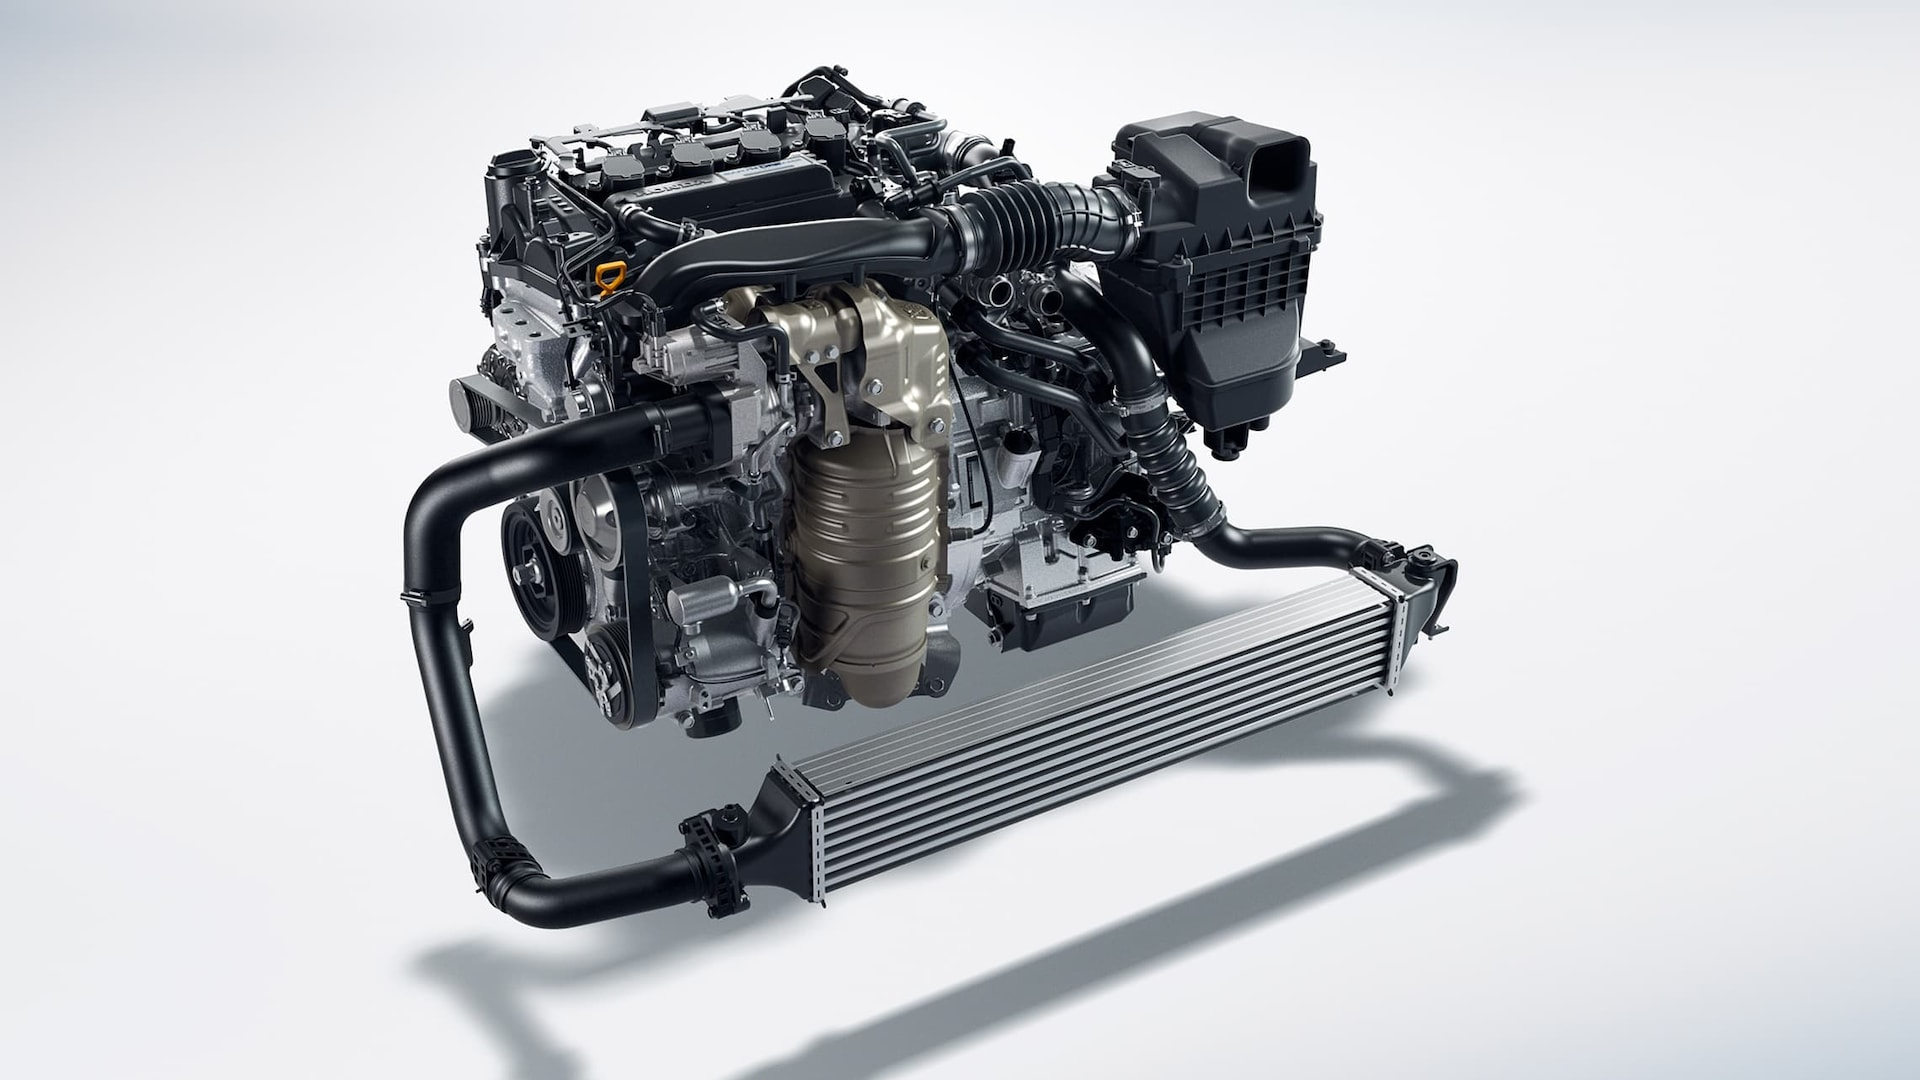 1.5-liter turbocharged and intercooled 4-cylinder engine for the 2020 Honda Civic Touring Sedan.